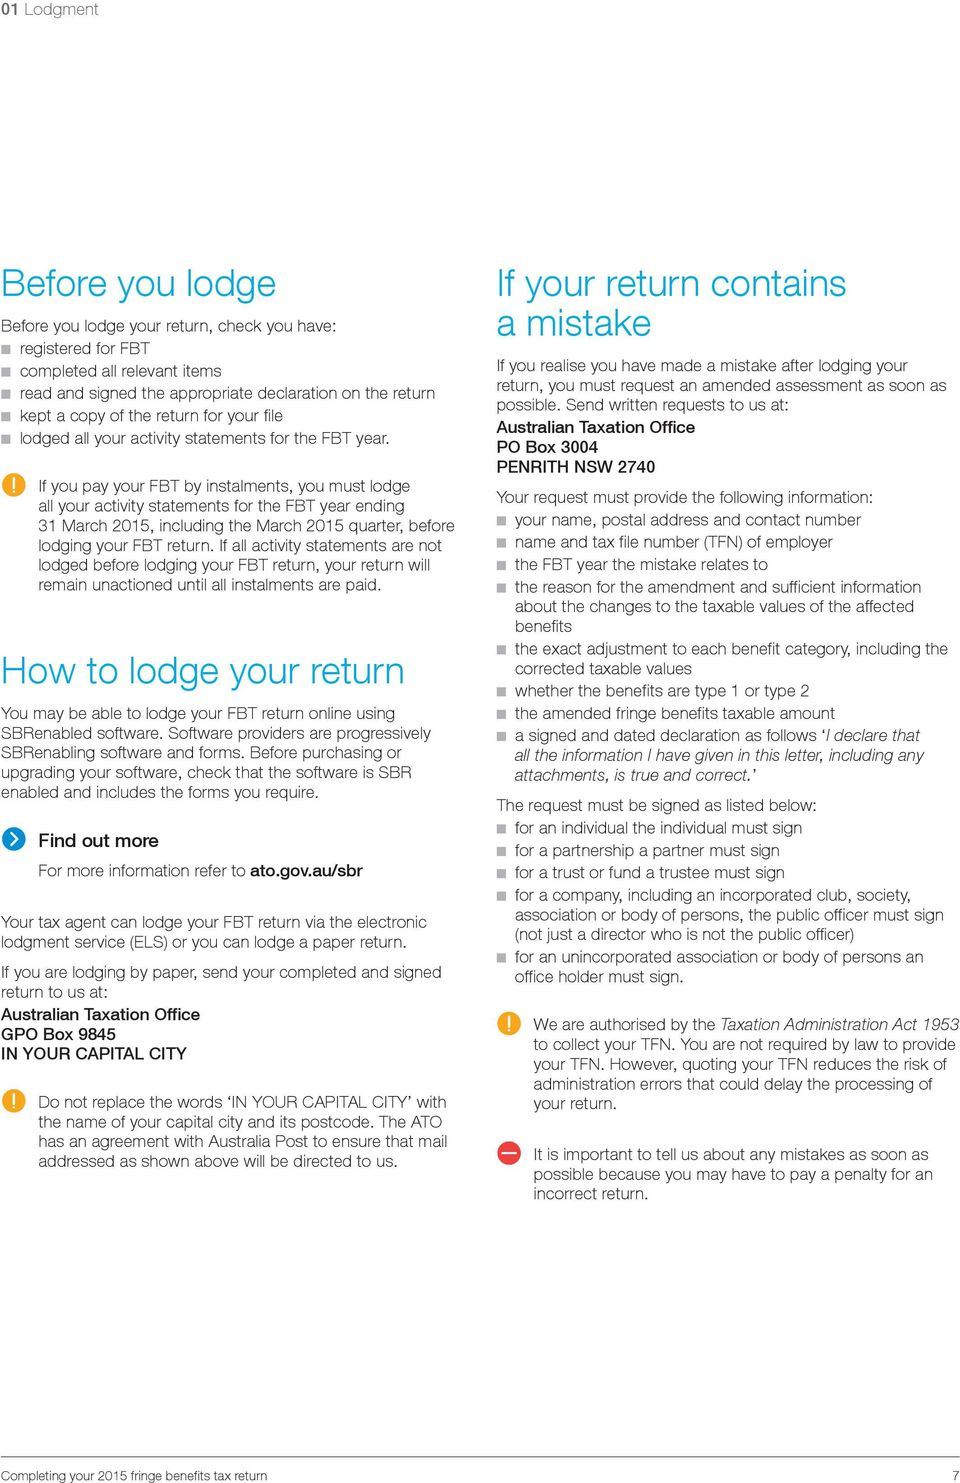 including the March 2015 quarter, before lodging your FBT return If all activity statements are not lodged before lodging your FBT return, your return will remain unactioned until all instalments are